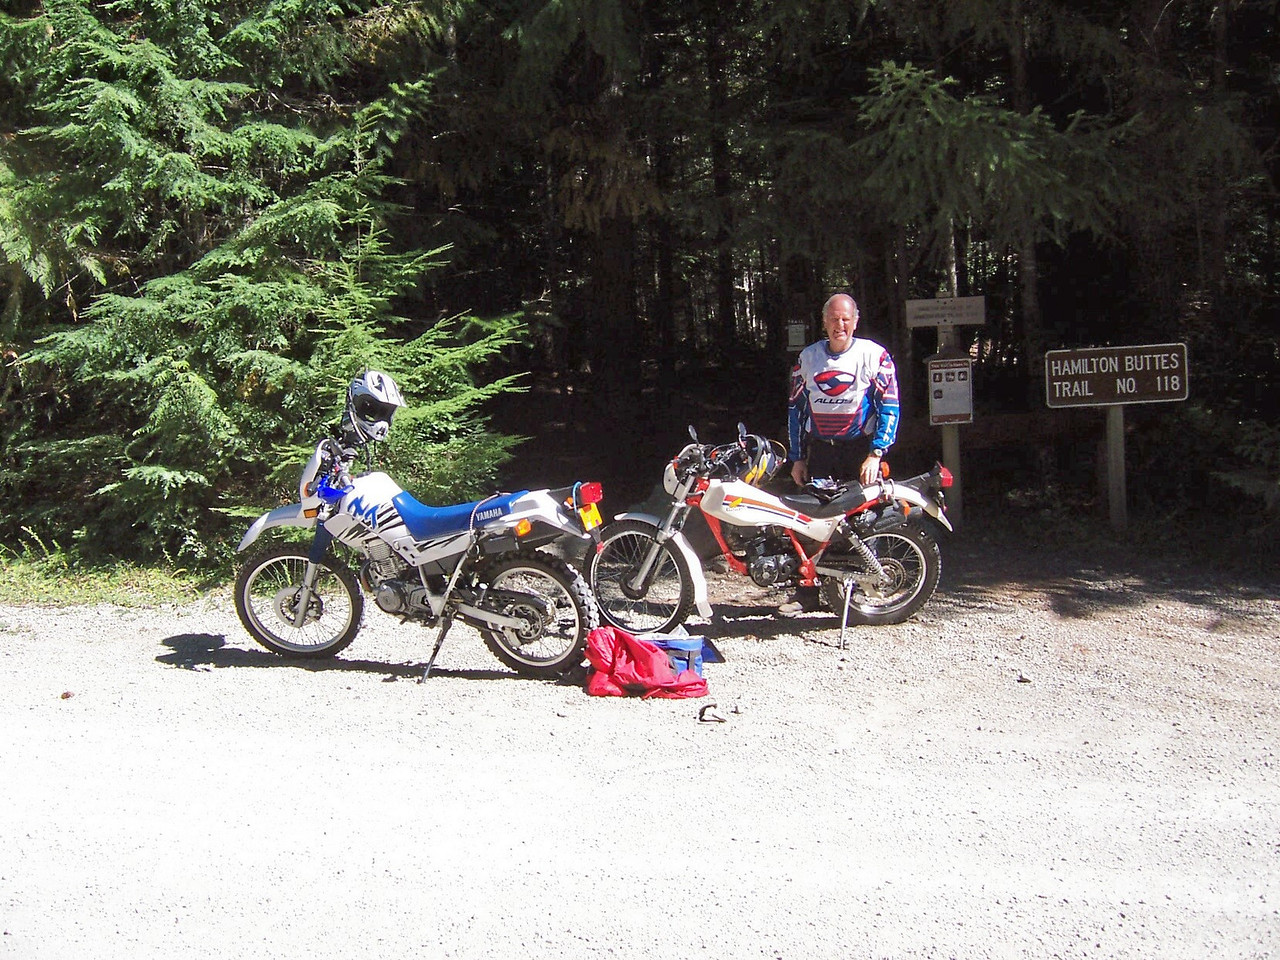 Eric's XT 225 & the Reflex, waiting for the slow riders at start of Hamiton Buttes trail.